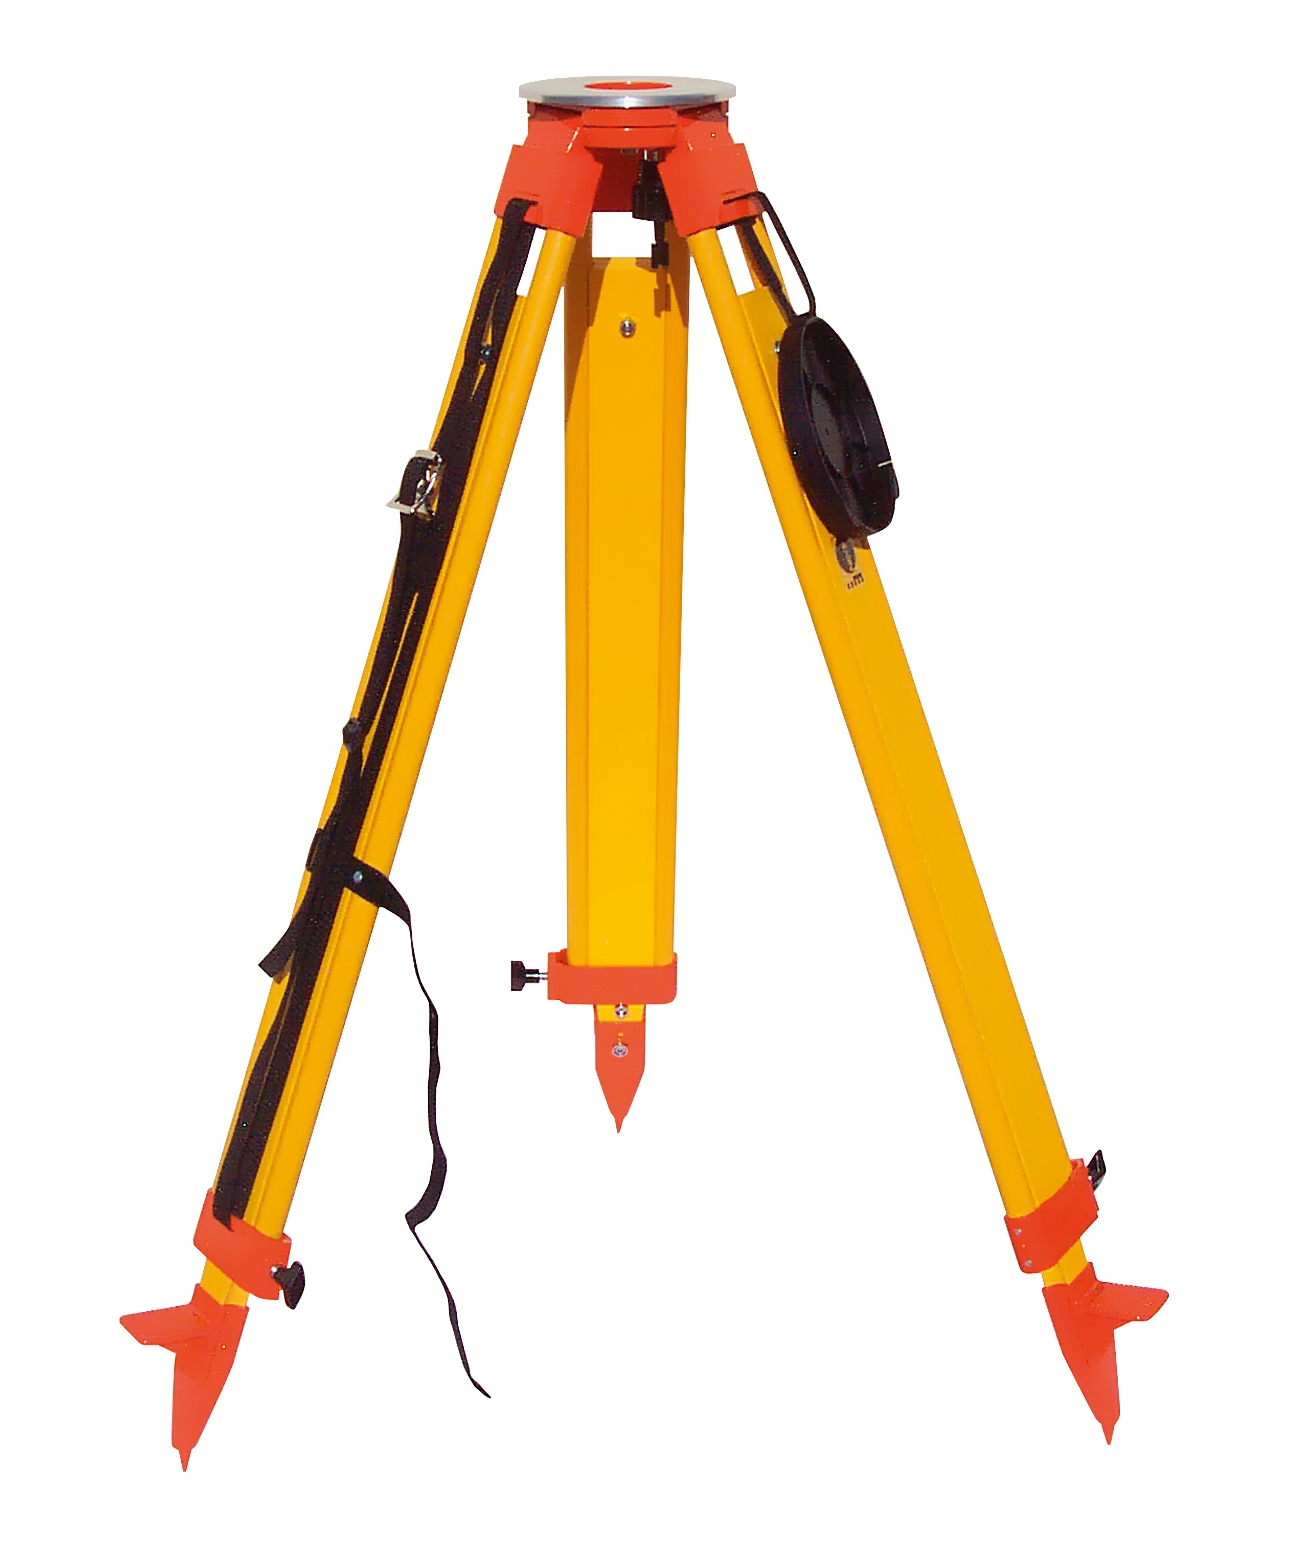 NEDO Surveyors Grade Wooden Tripod with Screw Clamp